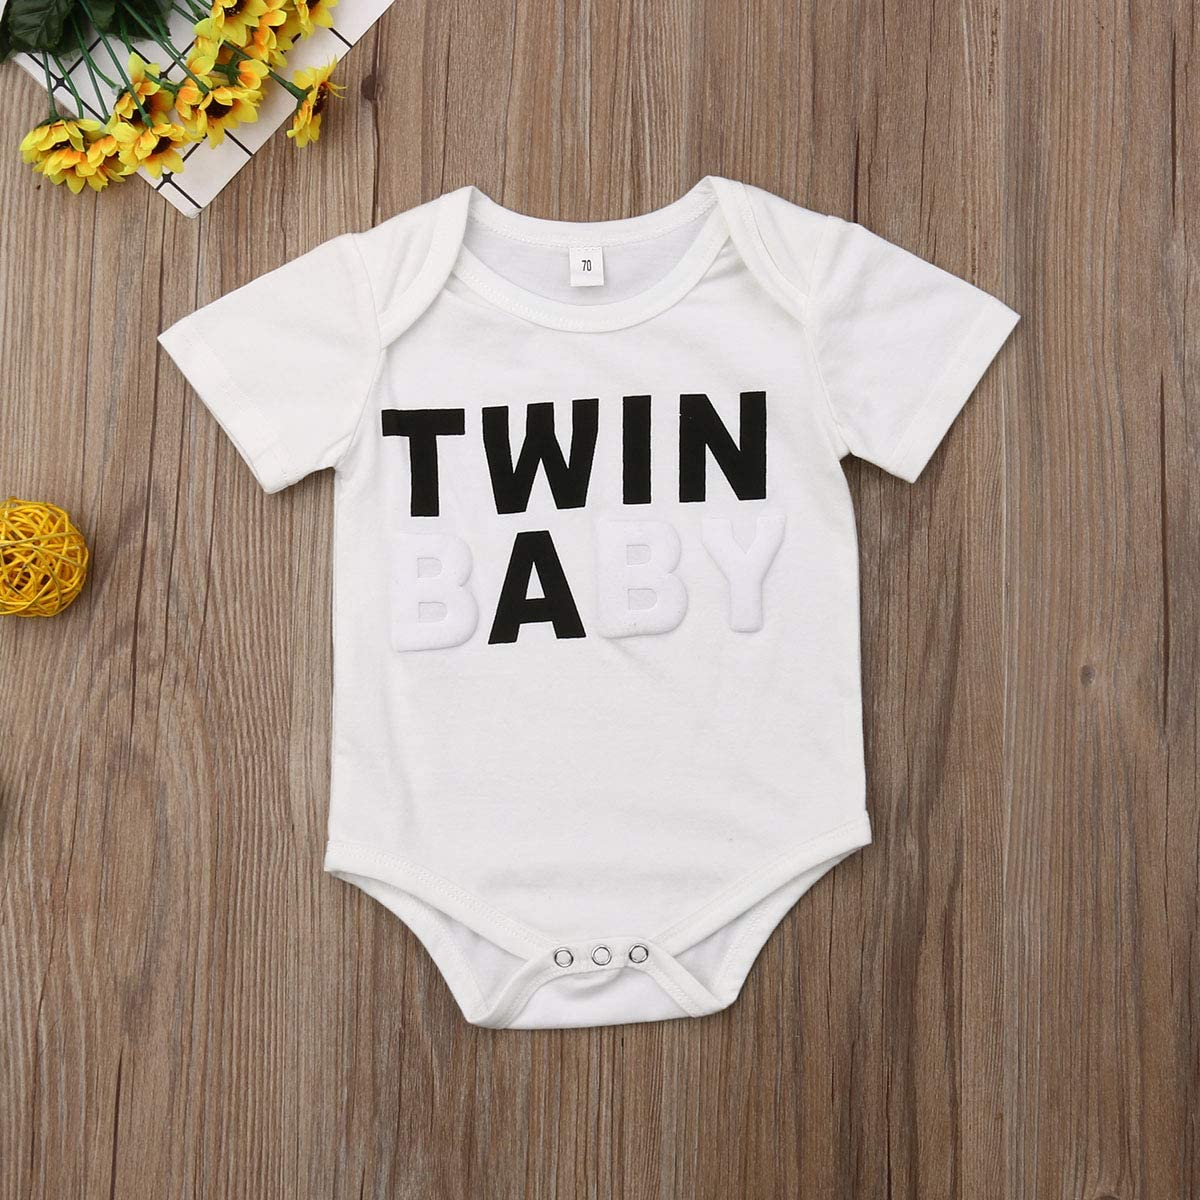 Madjtlqy Newborn Twins Baby Boys Girls Short Sleeve Bodysuit Romper Summer Outfit Clothes